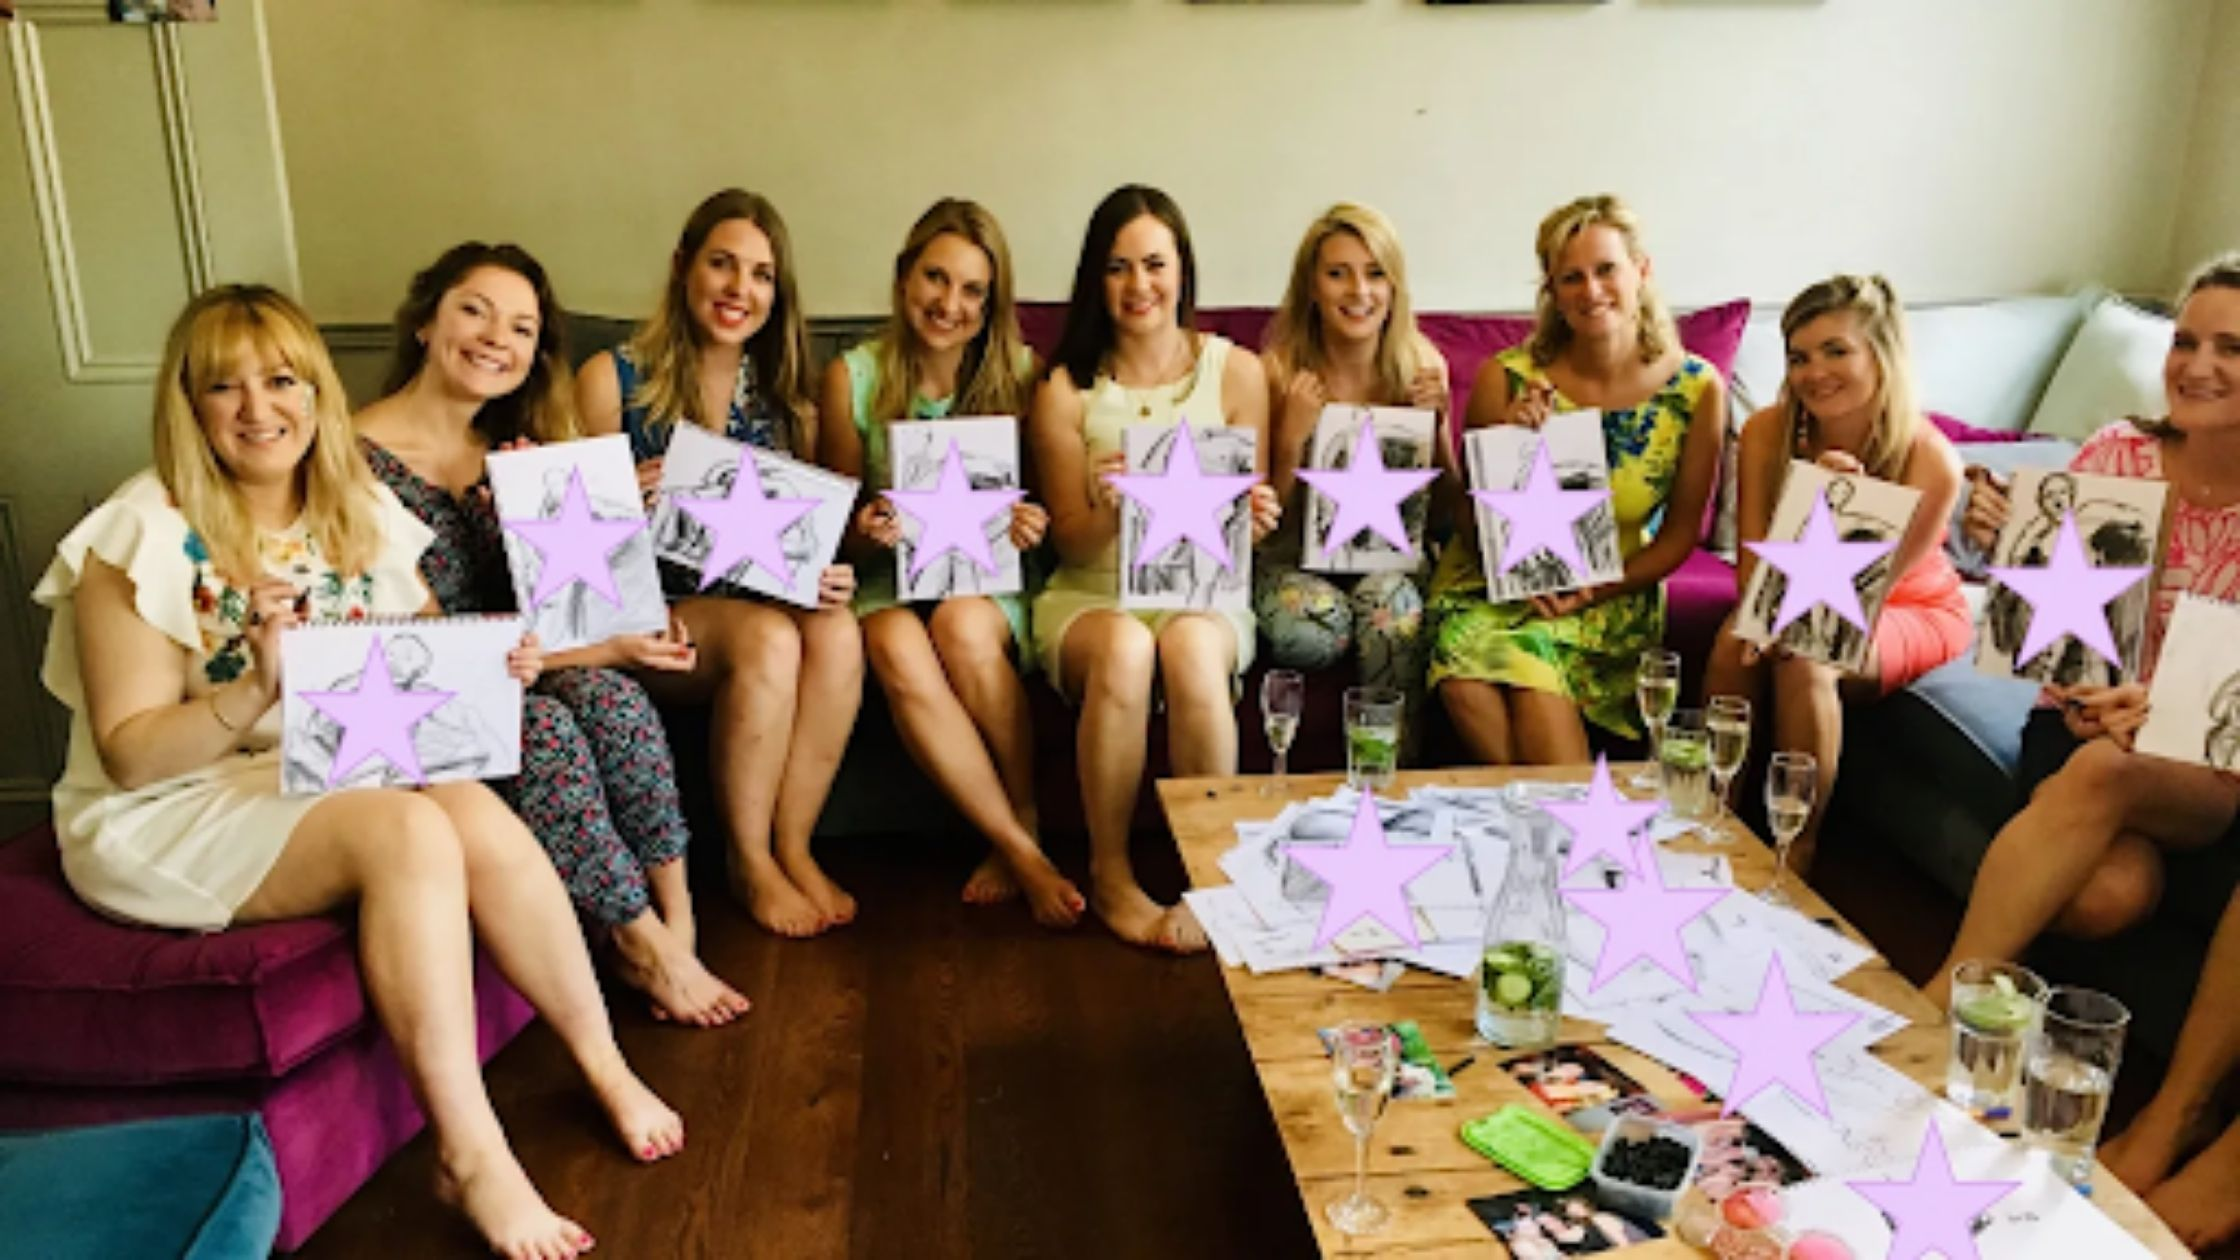 A hen party proudly showing off the art they've created